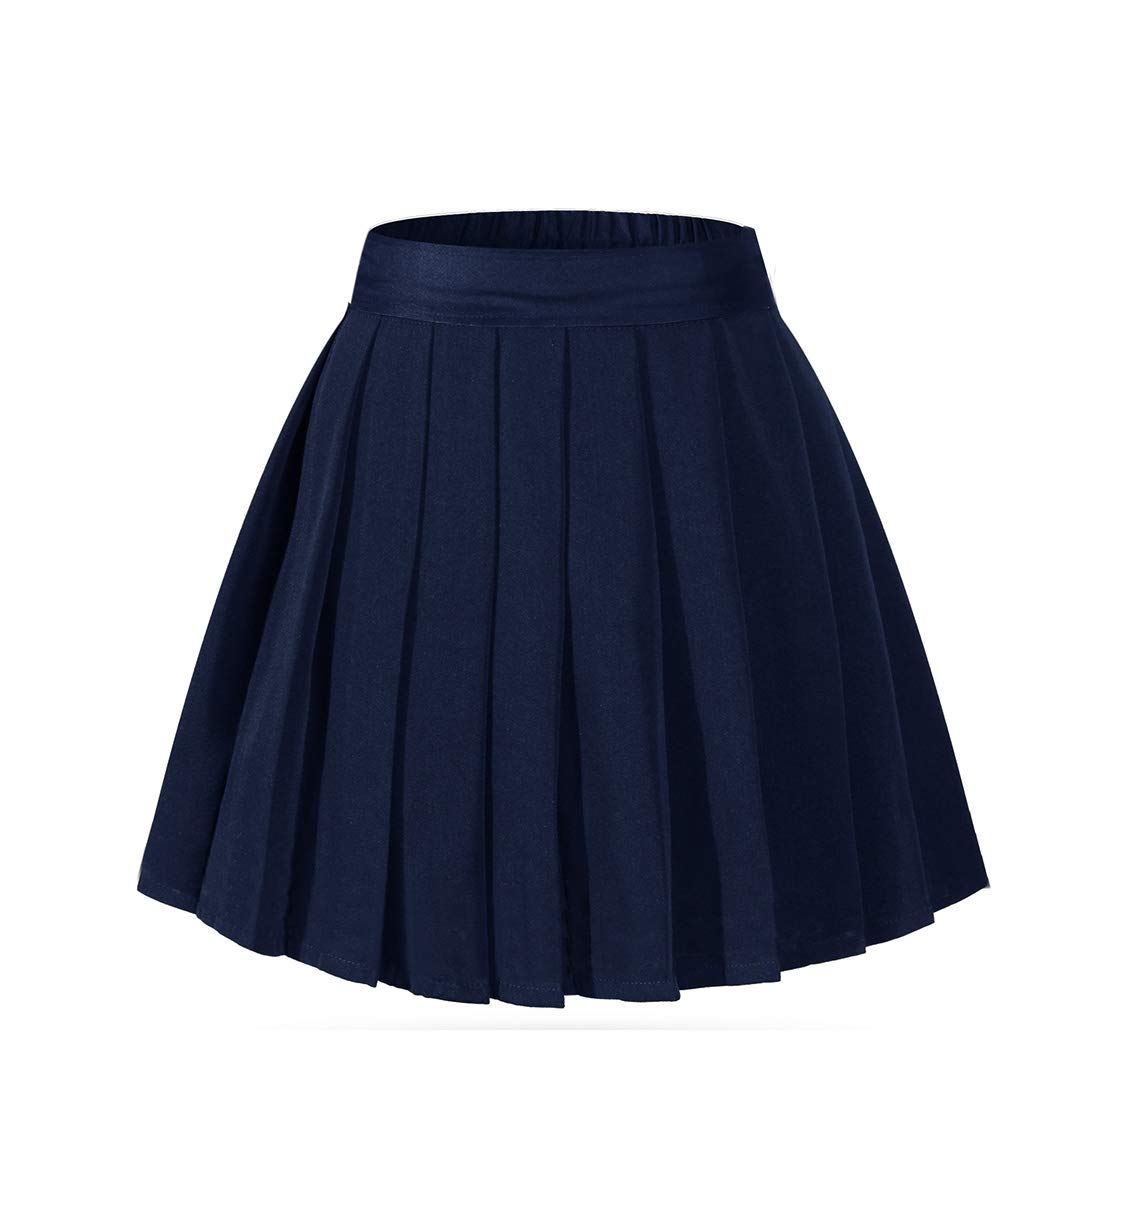 Beautifulfashionlife Girl's Navy Uniform Skirt Mini Tennis A-line Skirt with Shorts Blue,M by Beautifulfashionlife